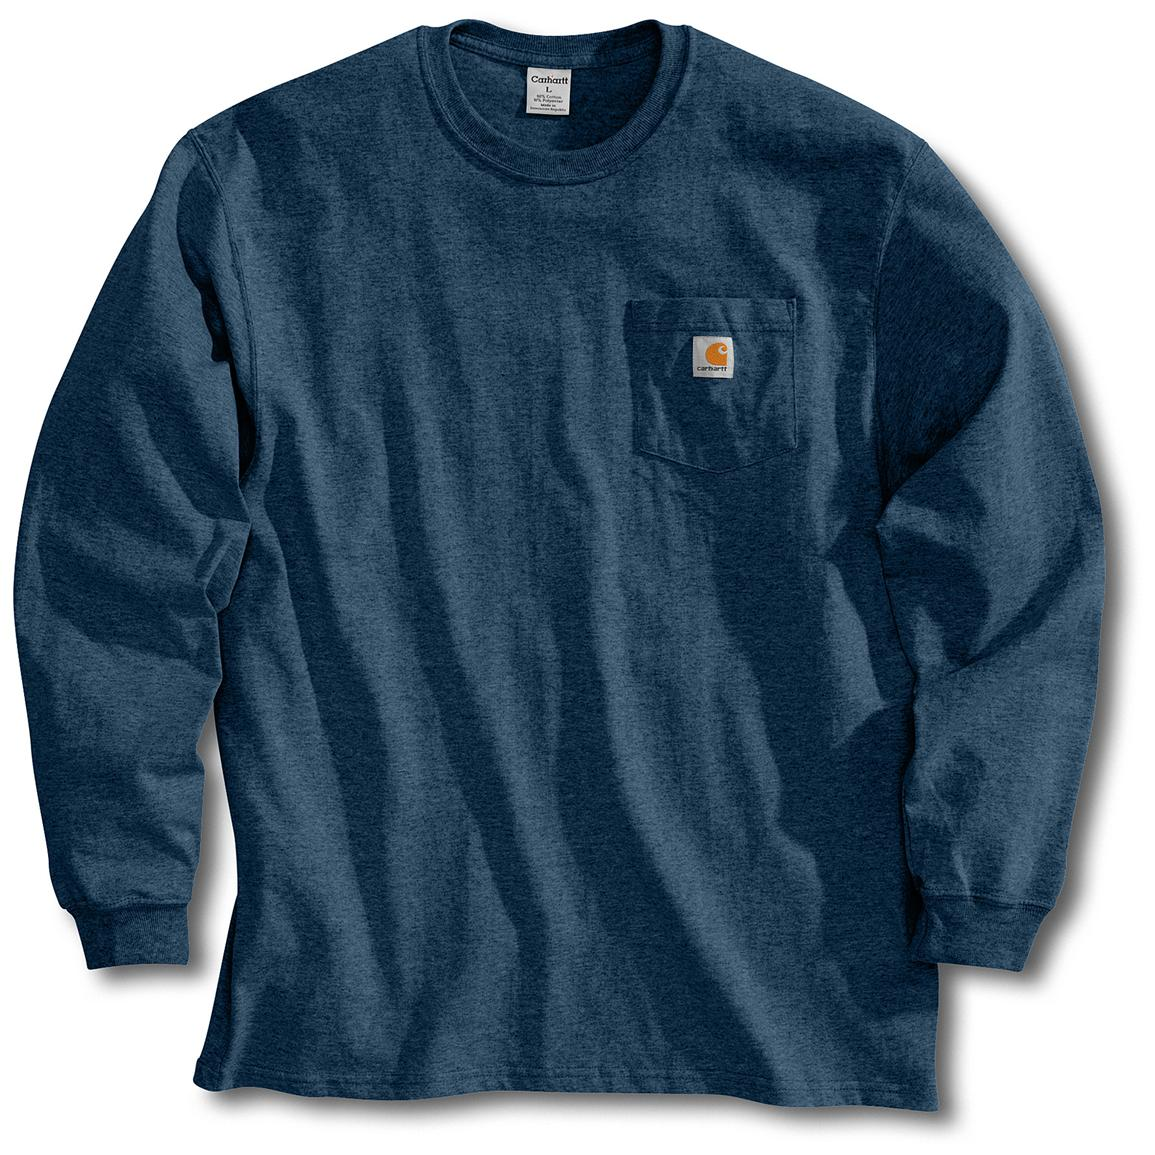 Men's Carhartt Workwear Long-Sleeve Pocket T-Shirt, Navy